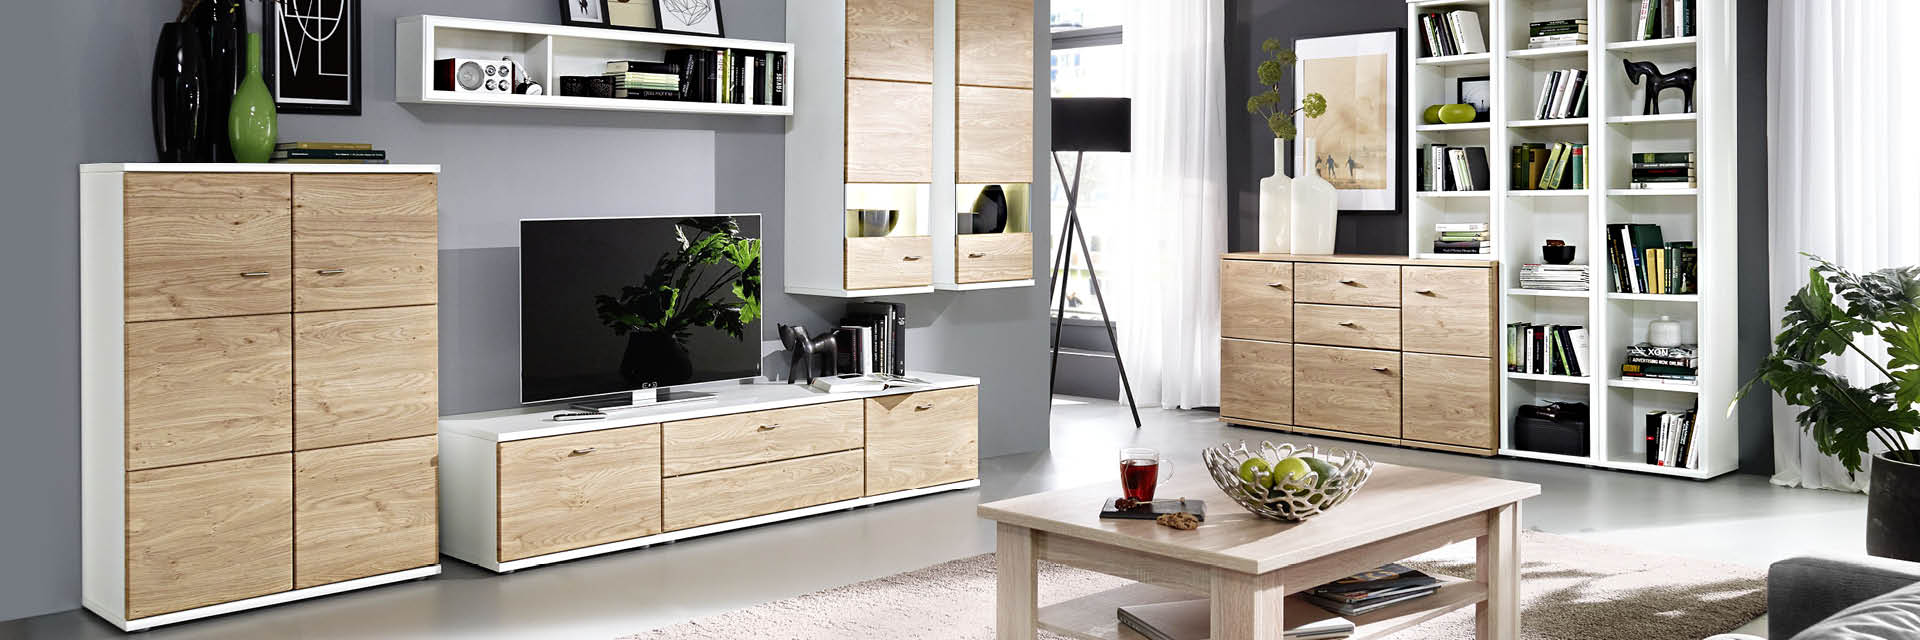 pretty wohnzimmer wohnw nde pictures naturholz wohnwande fur das wohnzimmer voglauer mobel. Black Bedroom Furniture Sets. Home Design Ideas